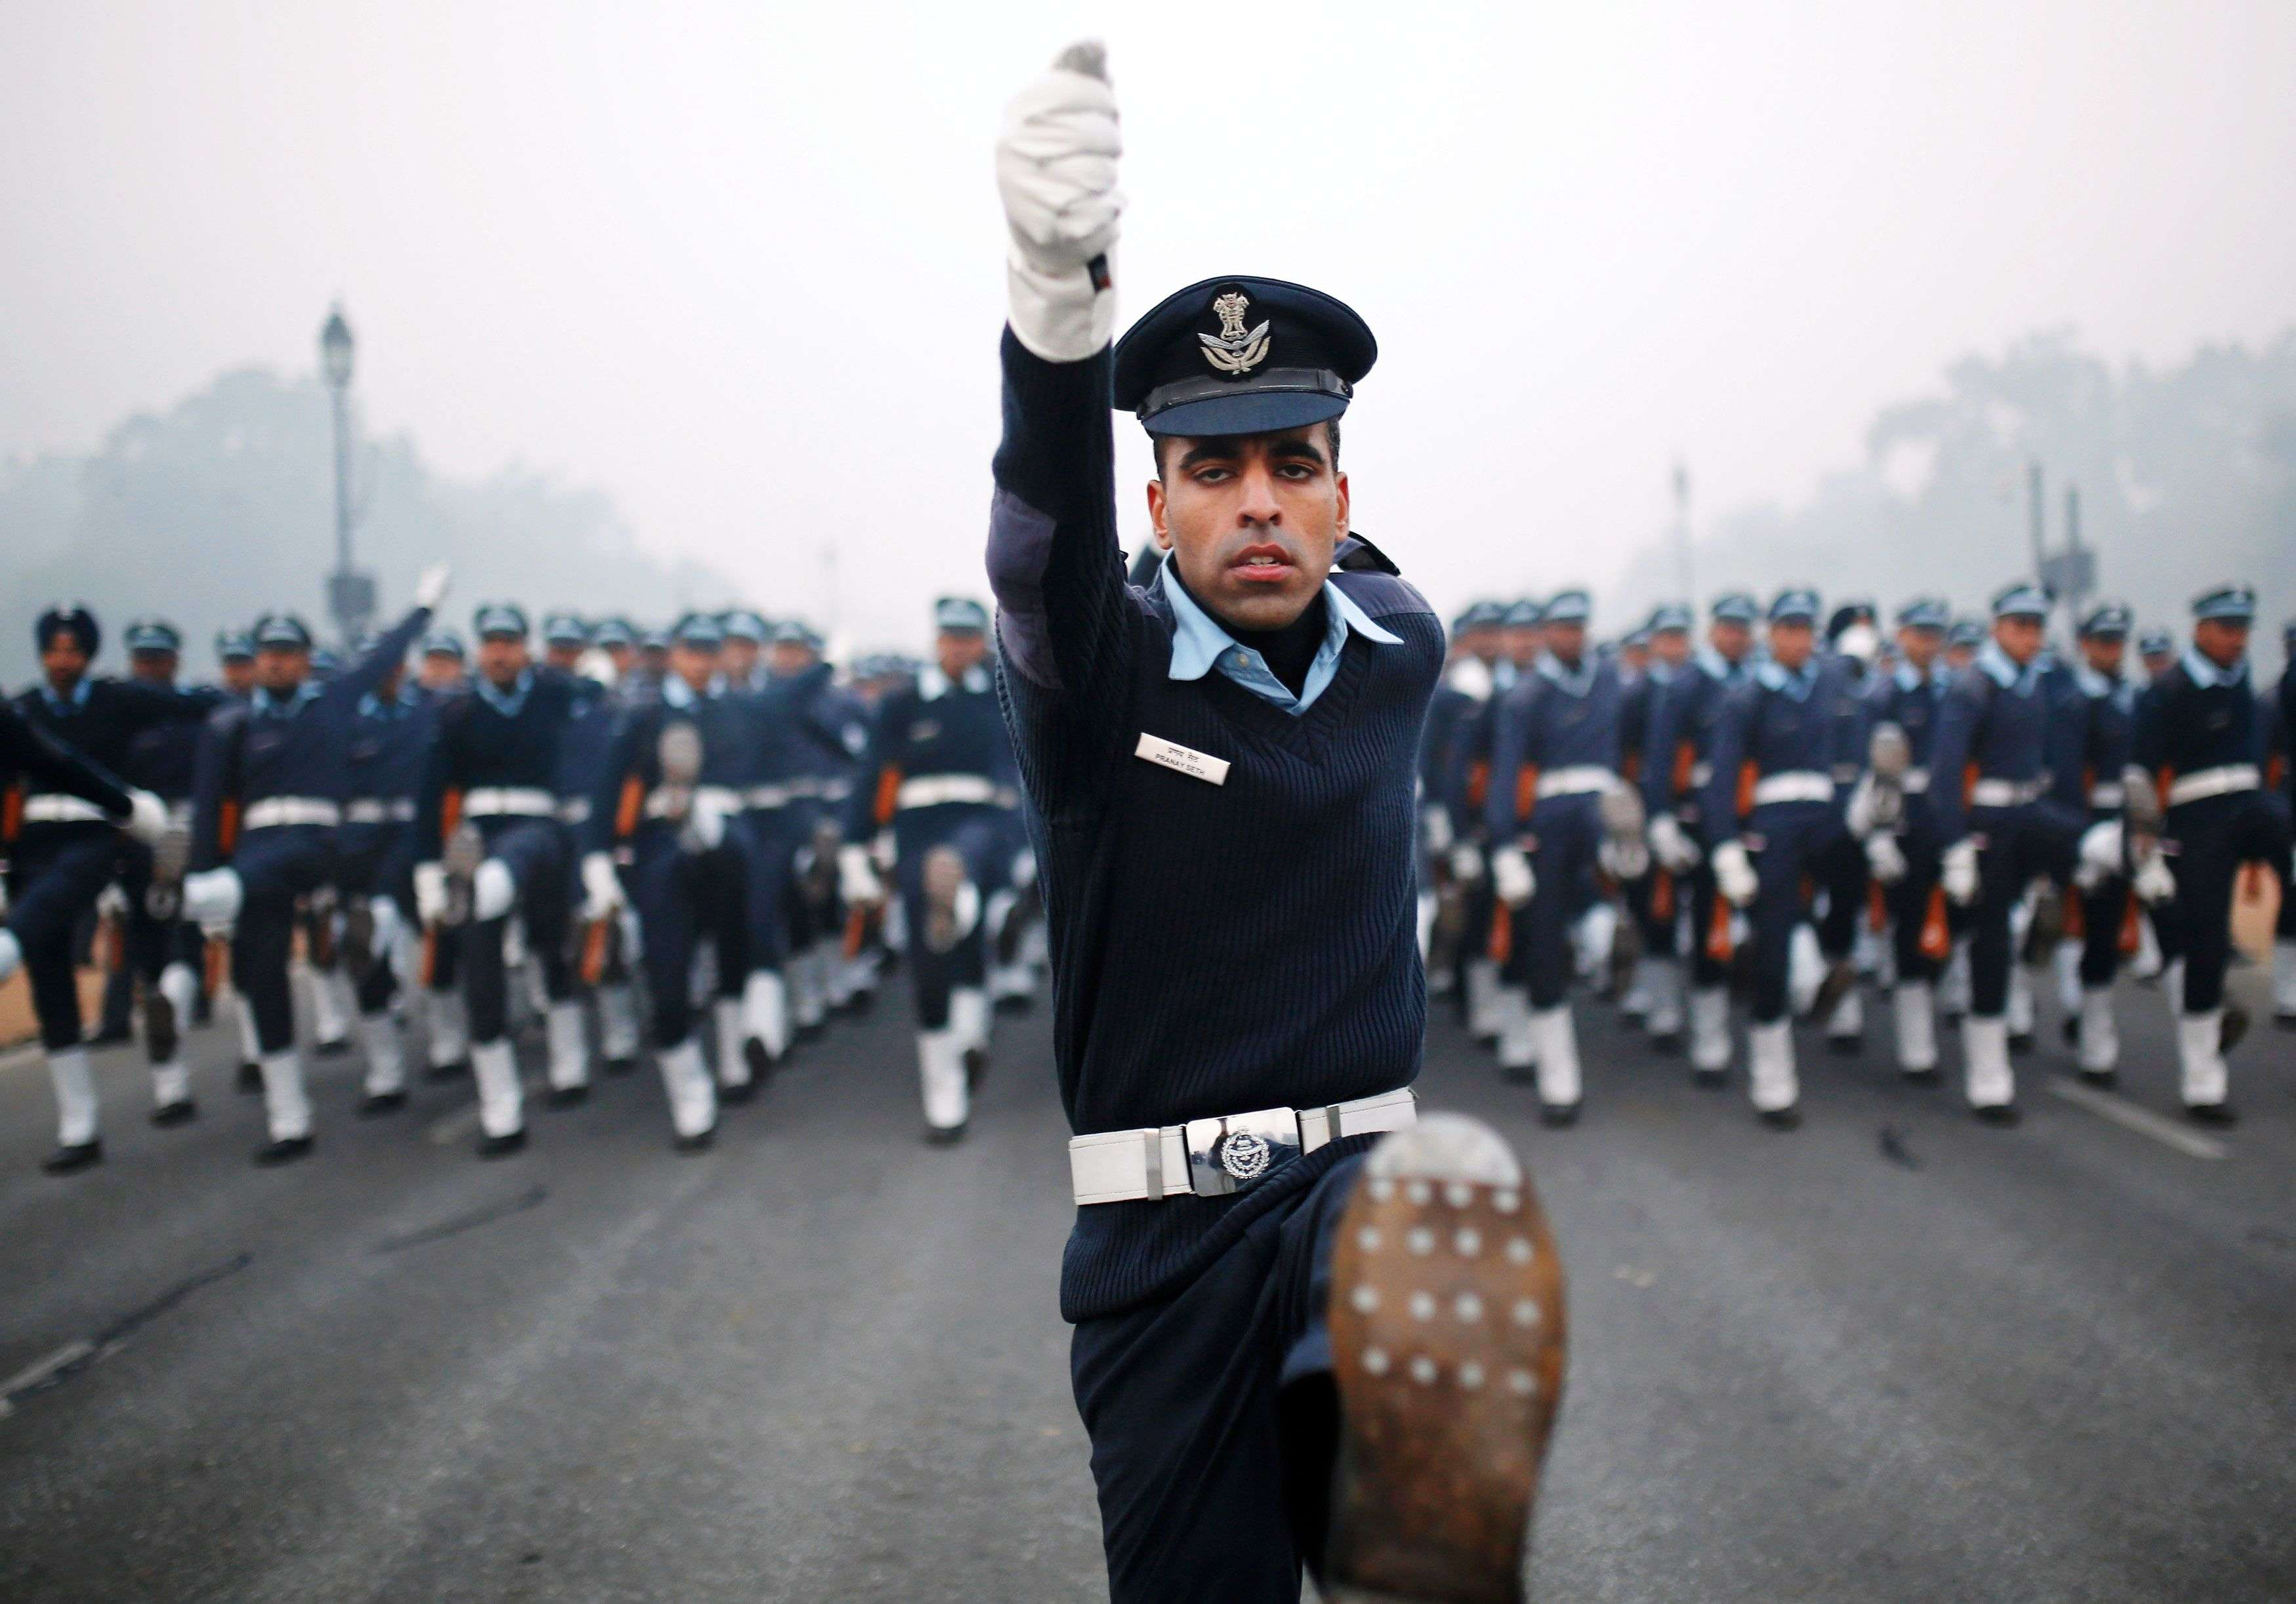 Indian Air Force soldiers rehearse for the Republic Day parade on a cold and foggy winter morning in New Delhi. (REUTERS/Ahmad Masood)